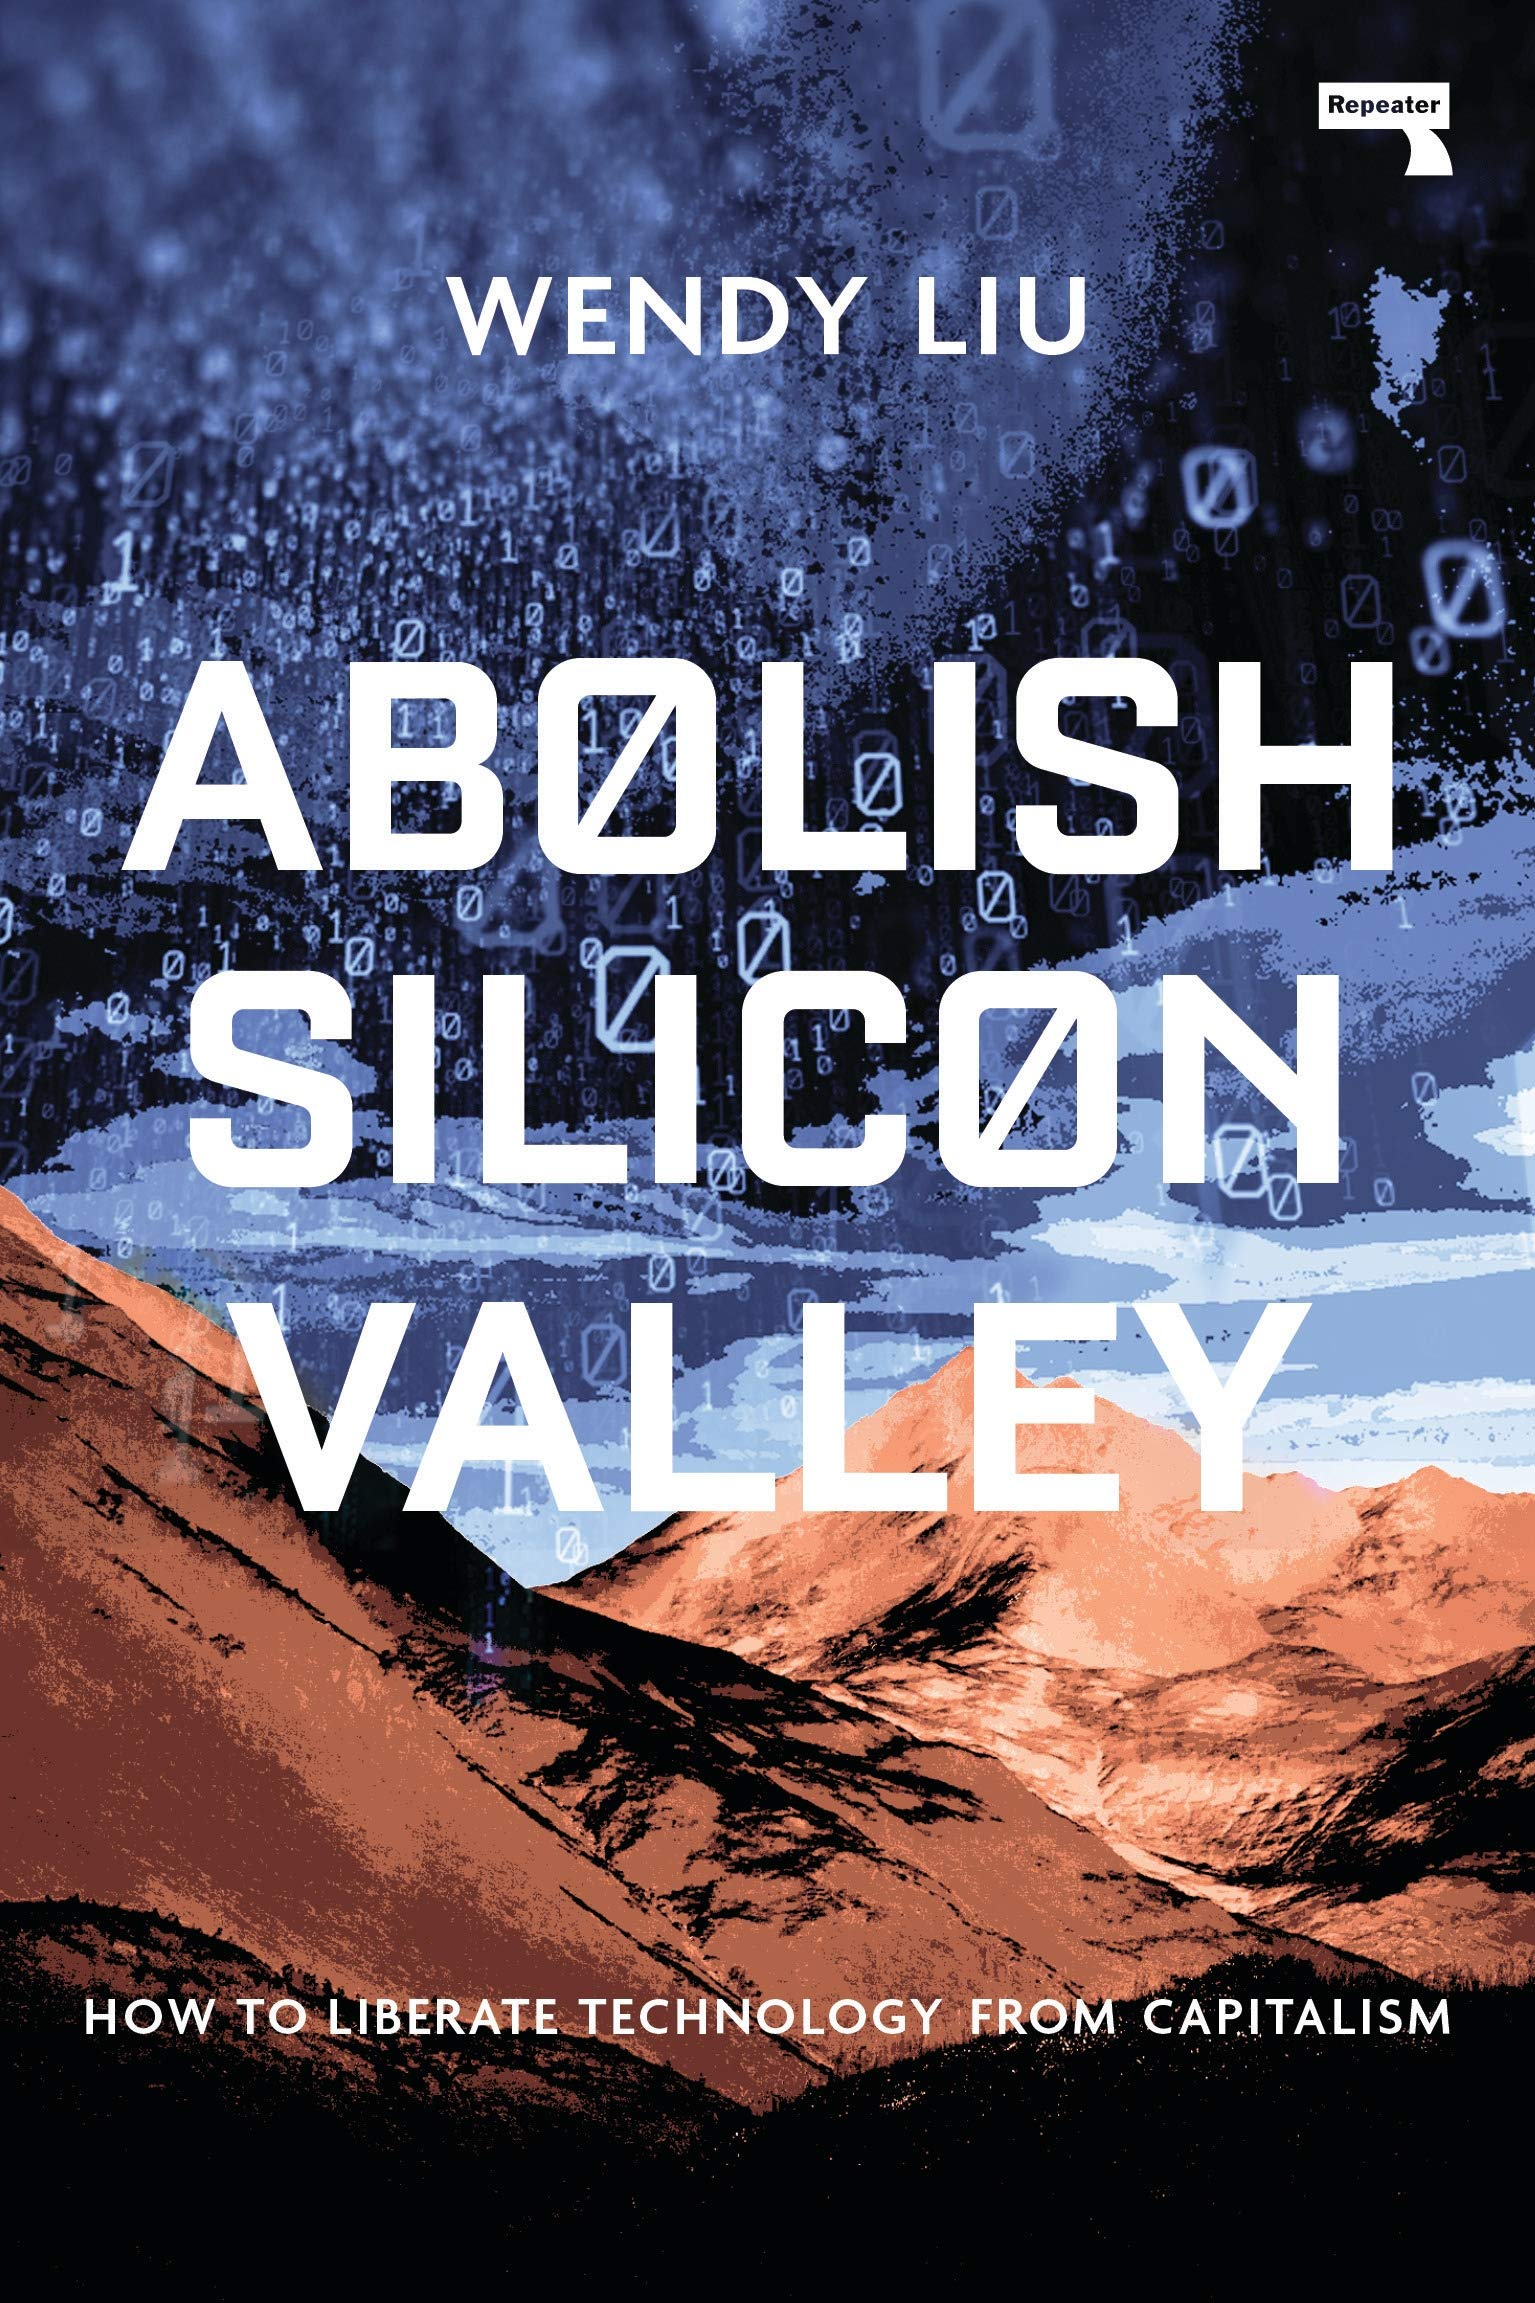 wendy liu buch tipp abolish silicon valley #sillyconvalley #abolishcapitalism #bomb silicon valley